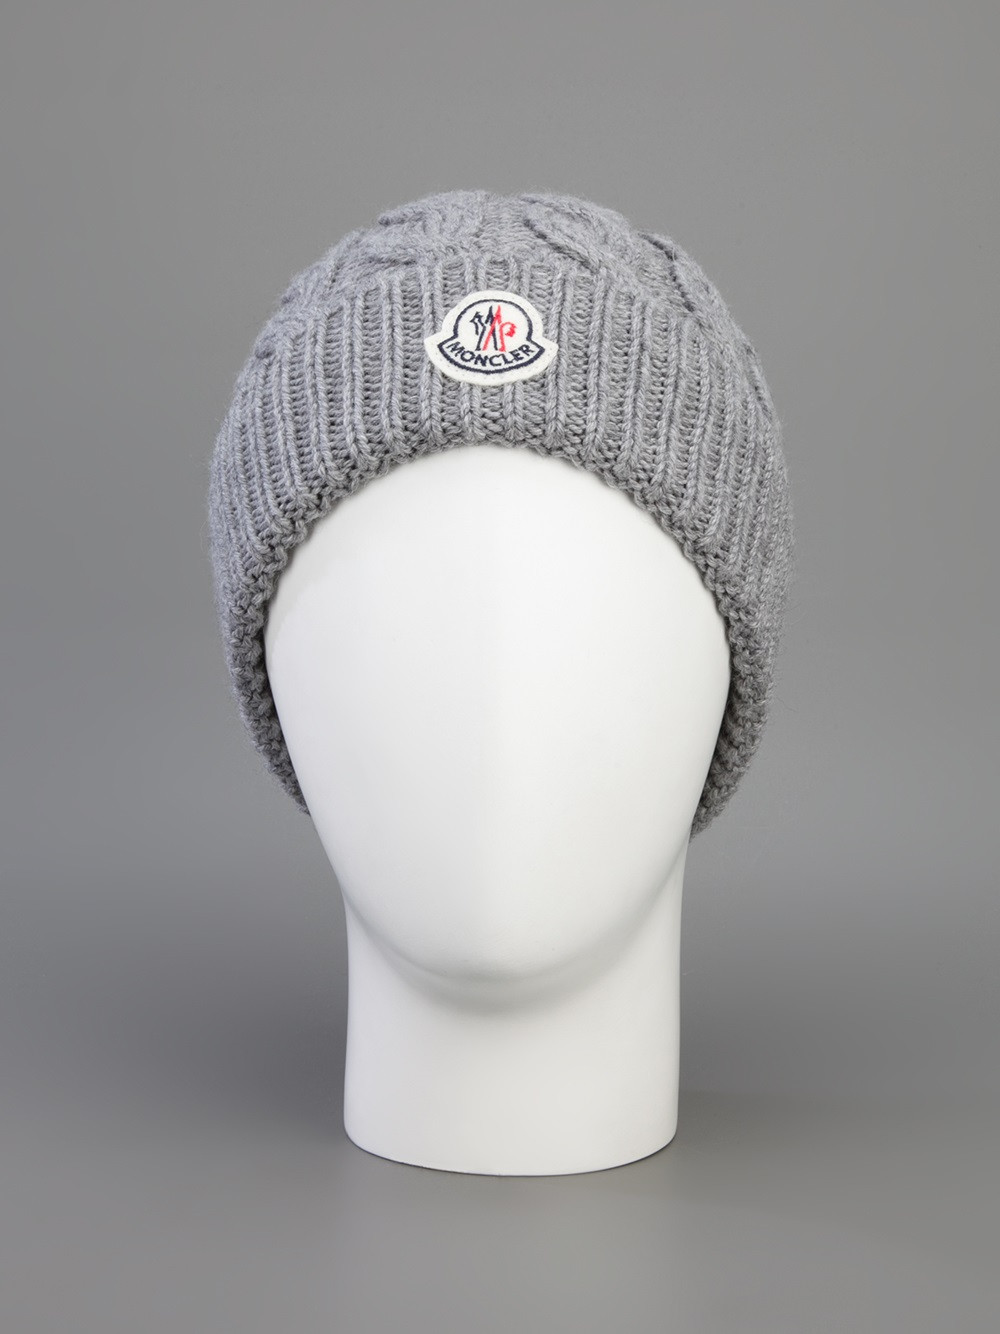 moncler cable knit beanie hat grey